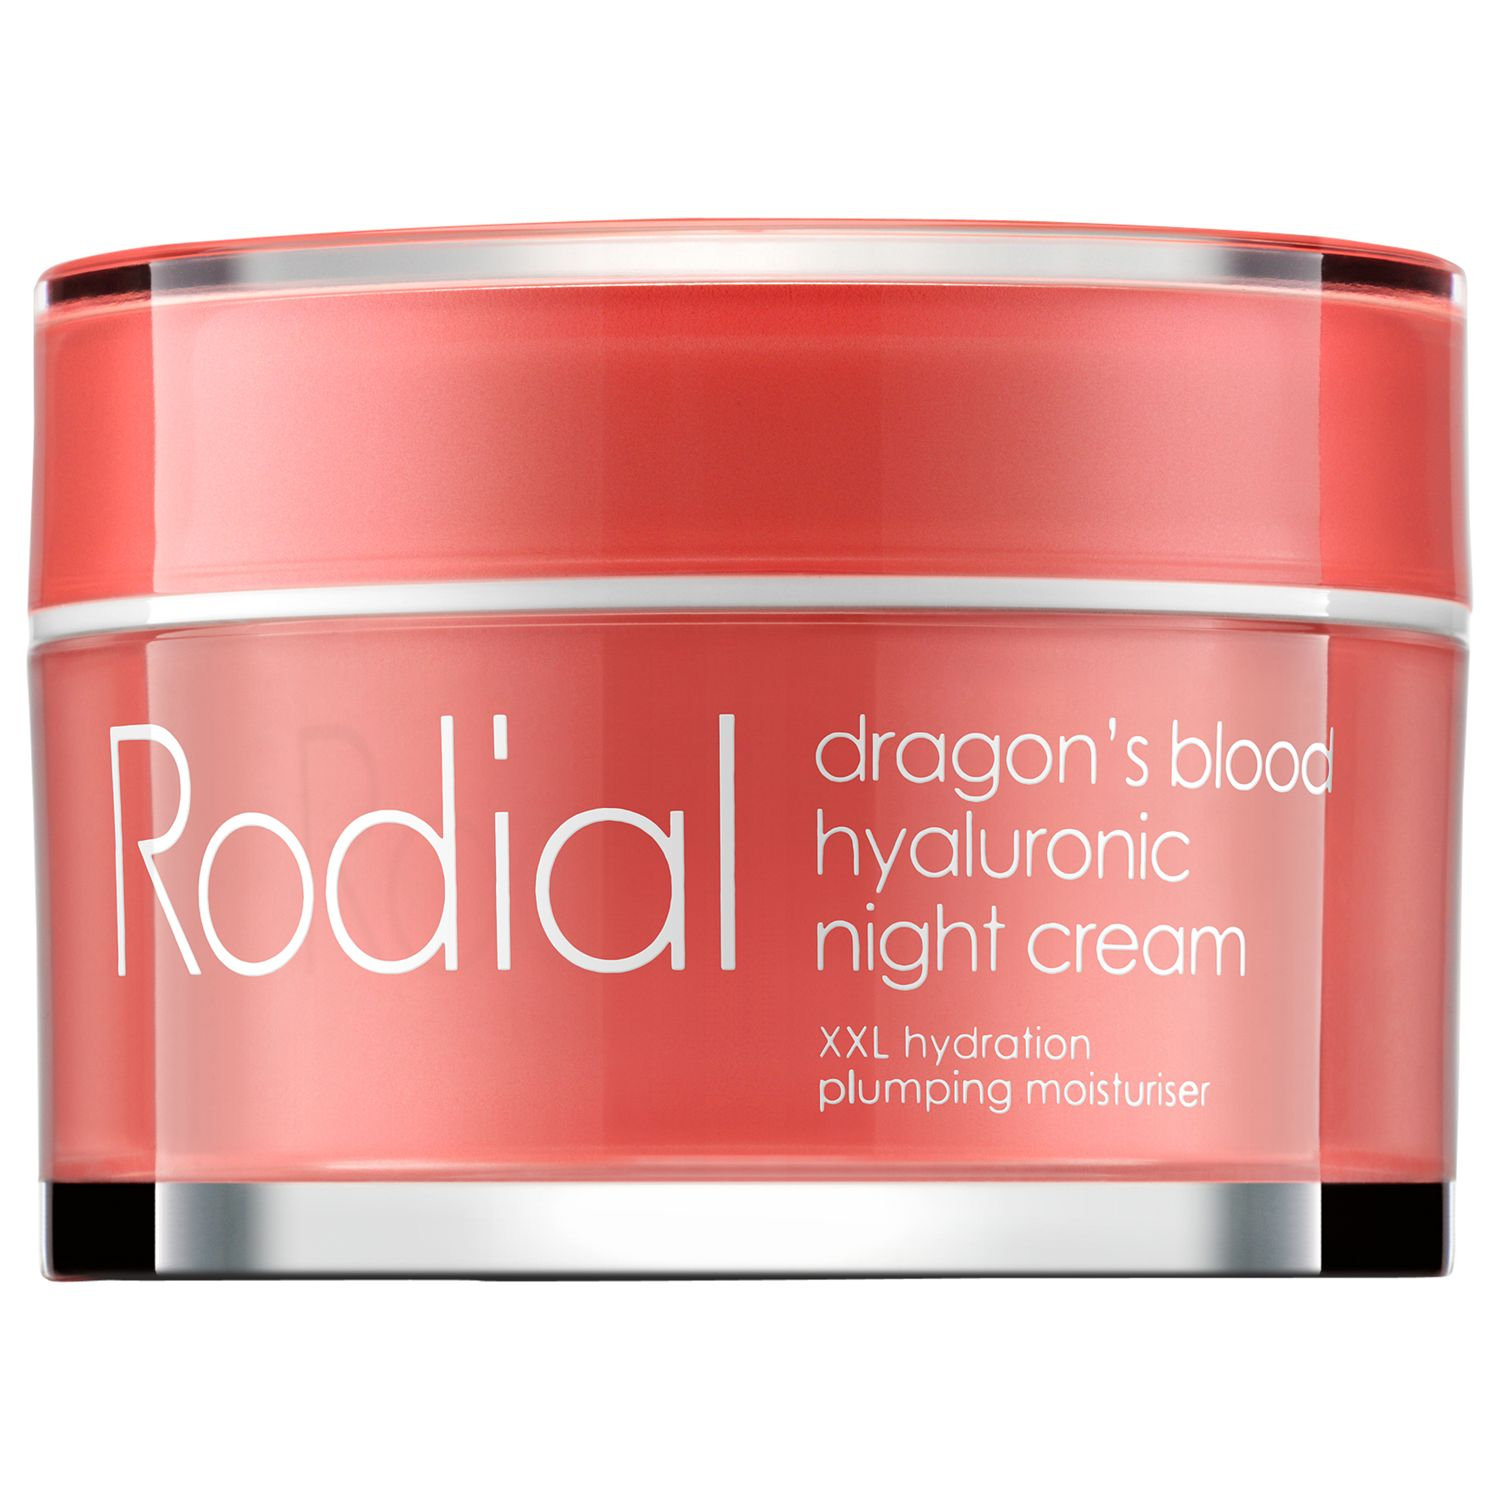 Rodial Rodial Dragon's Blood Night Cream, 50ml